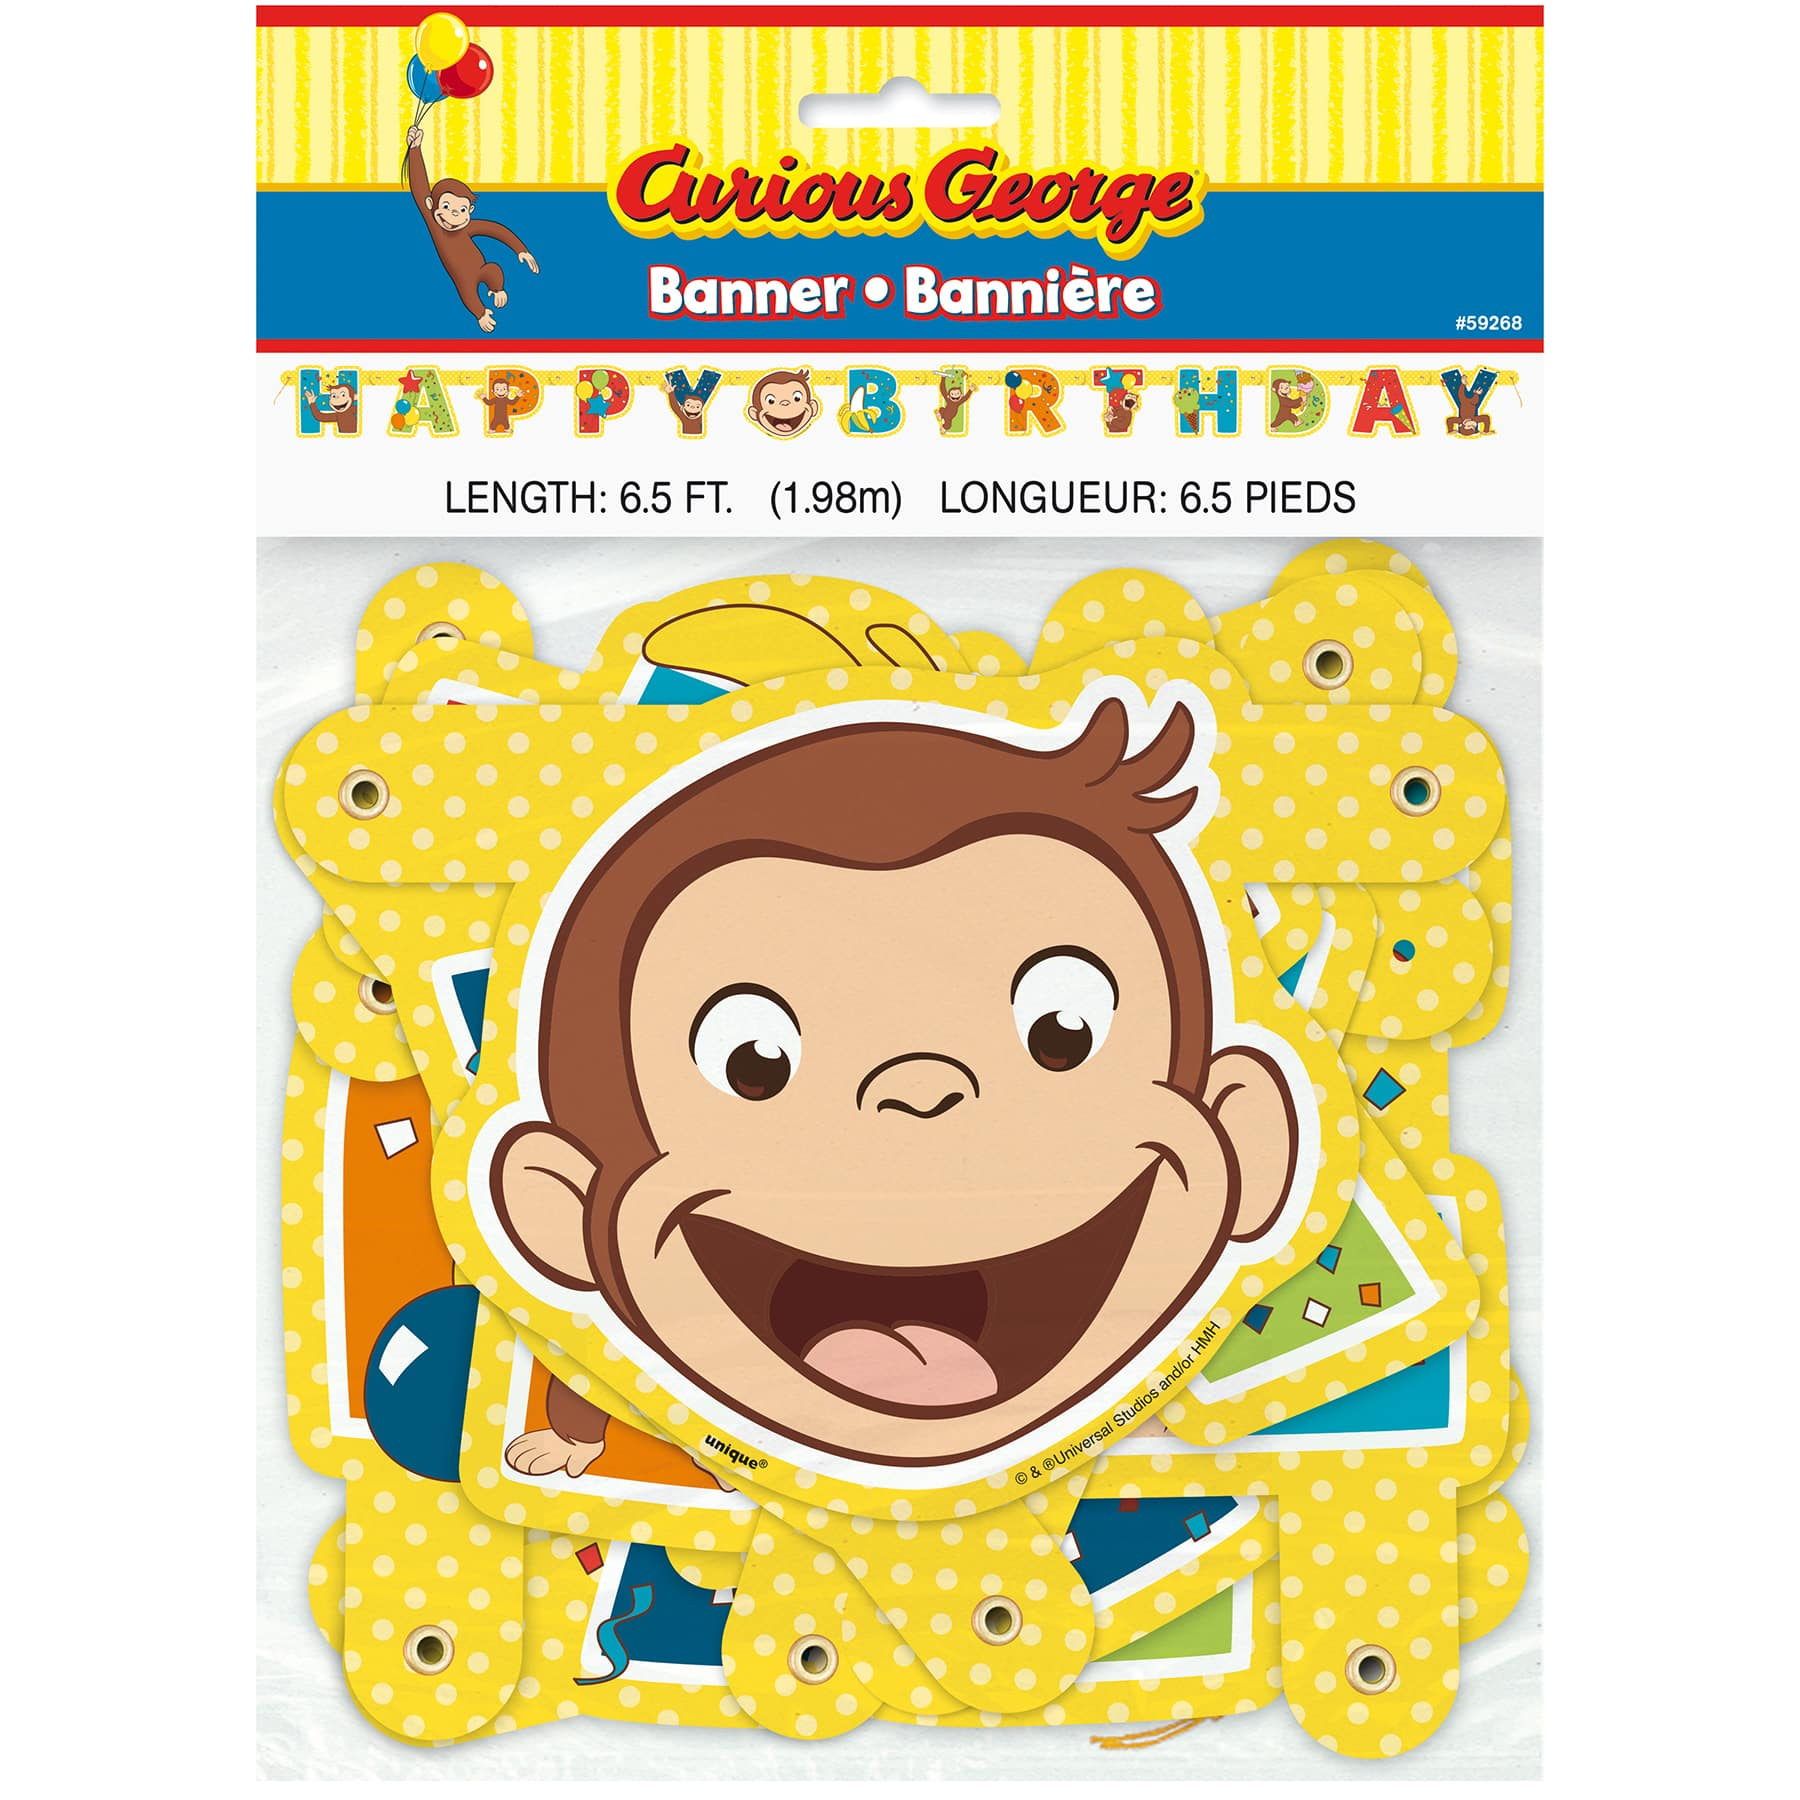 Curious George Party Banner Curious George Party Decorations